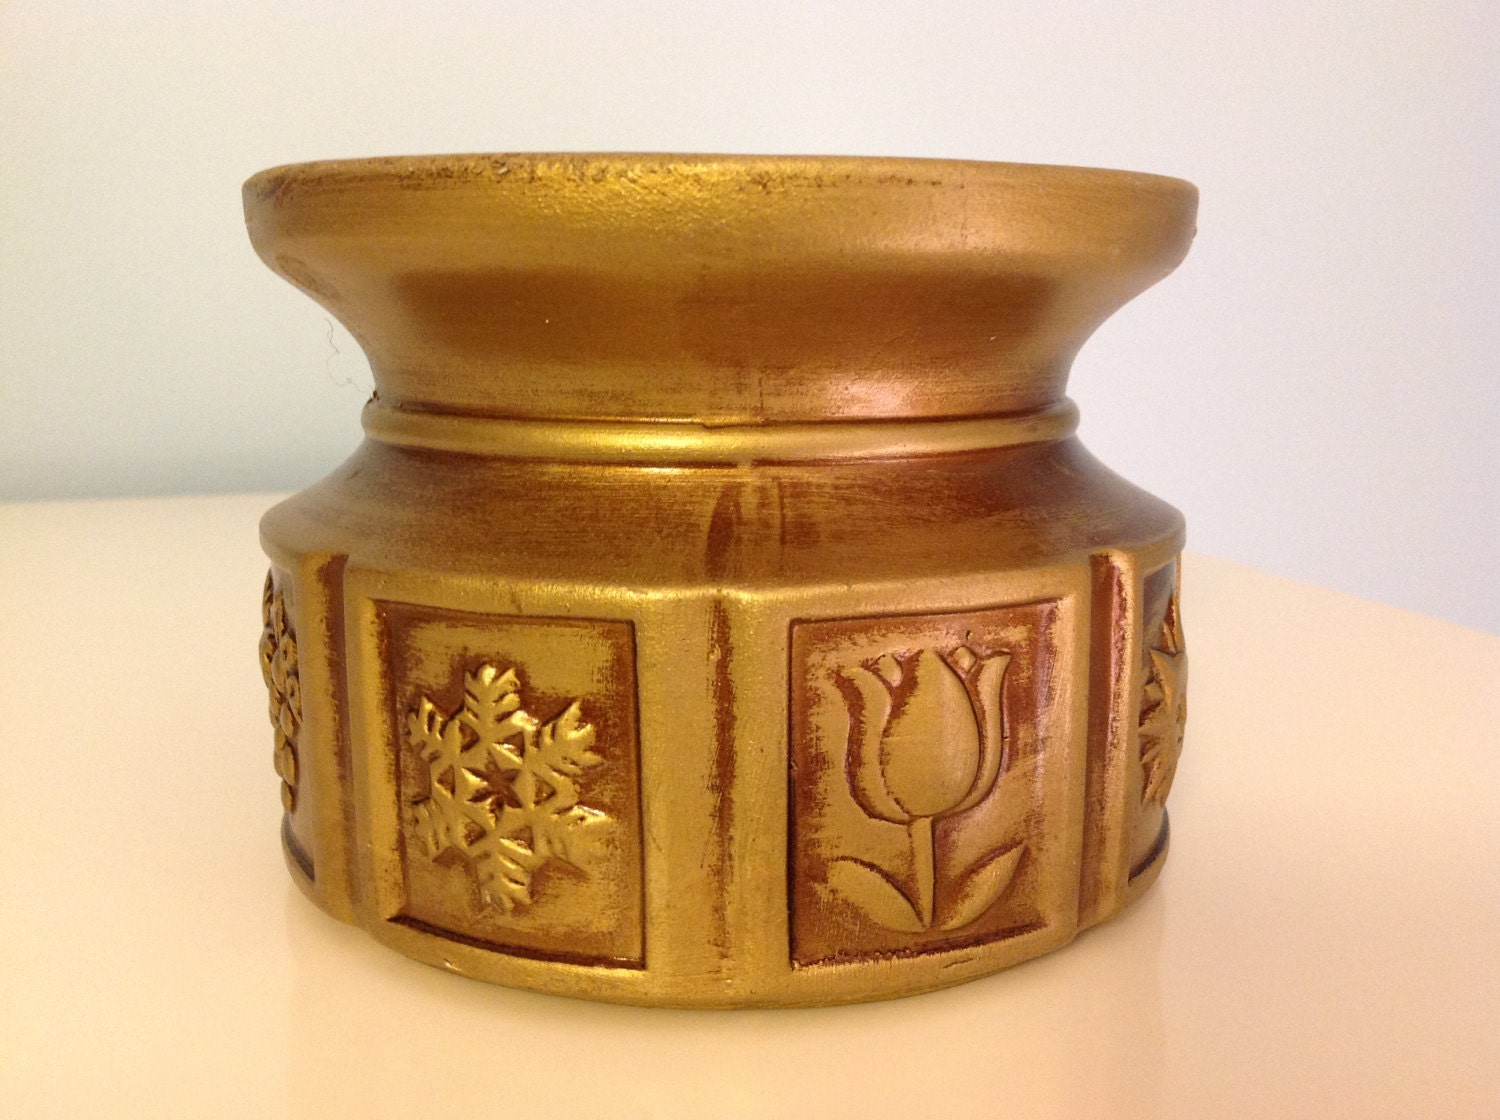 Vintage Candle Holder Gold Ceramic Four Seasons Candle Holder